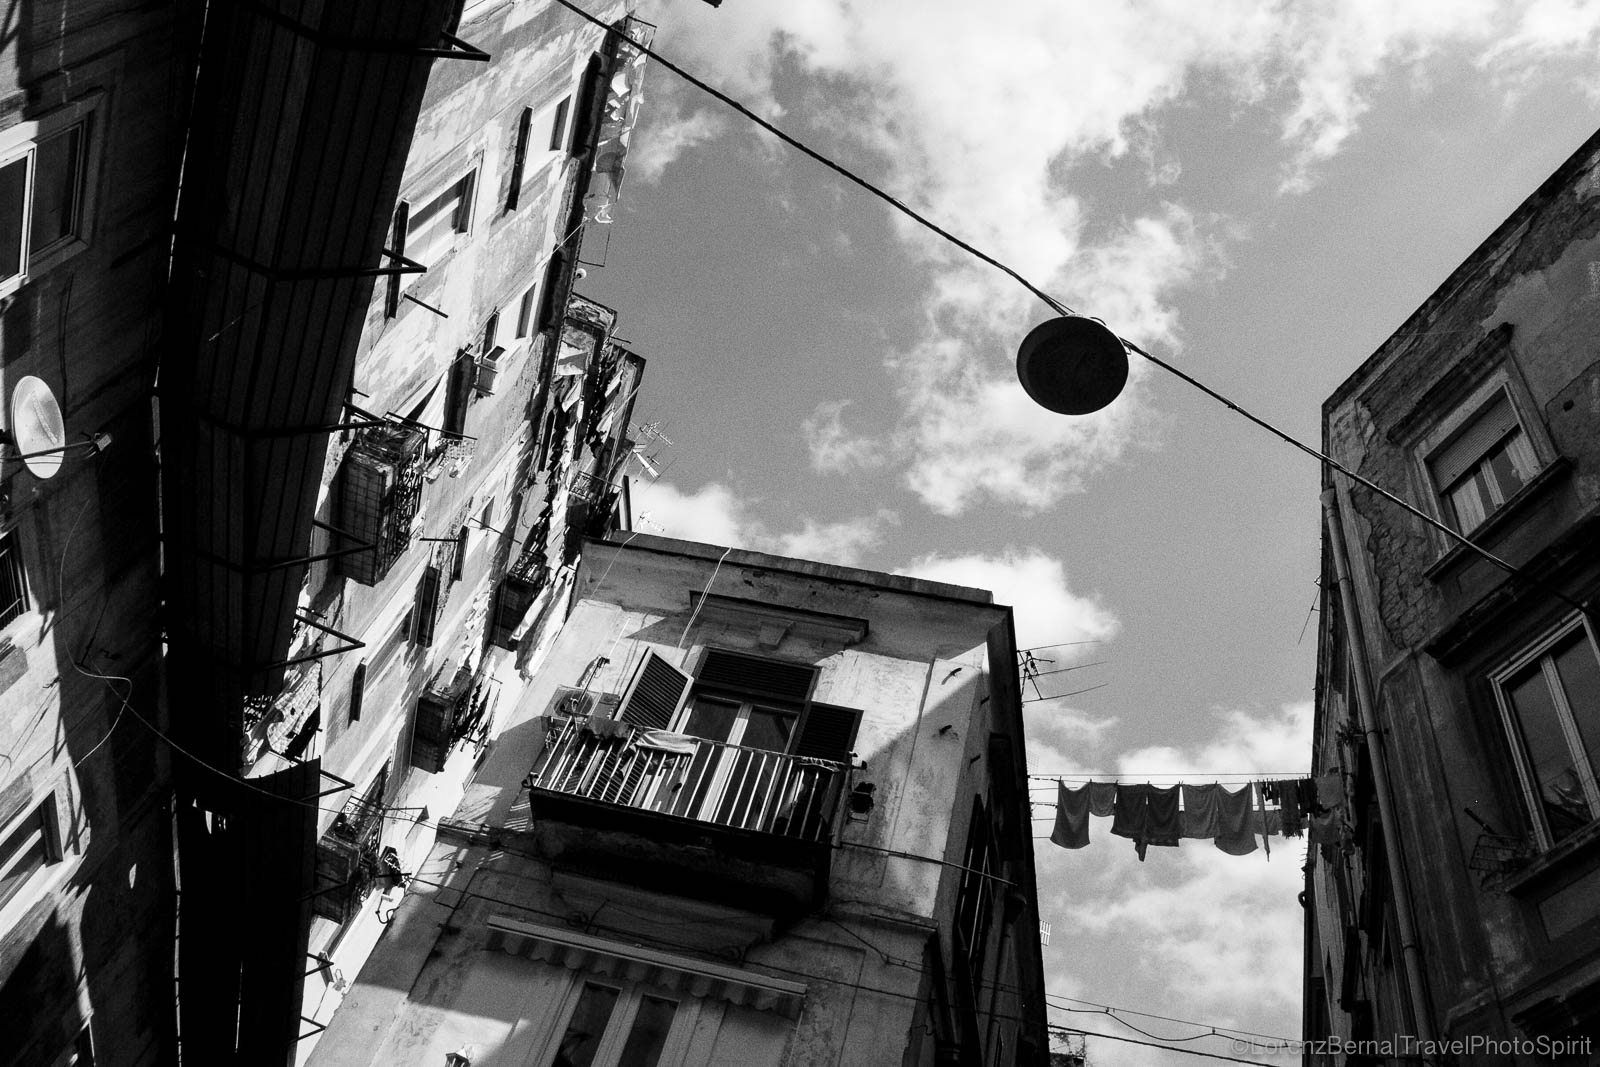 Urban Photography around the Spanish Quarter, Naples, Italy.